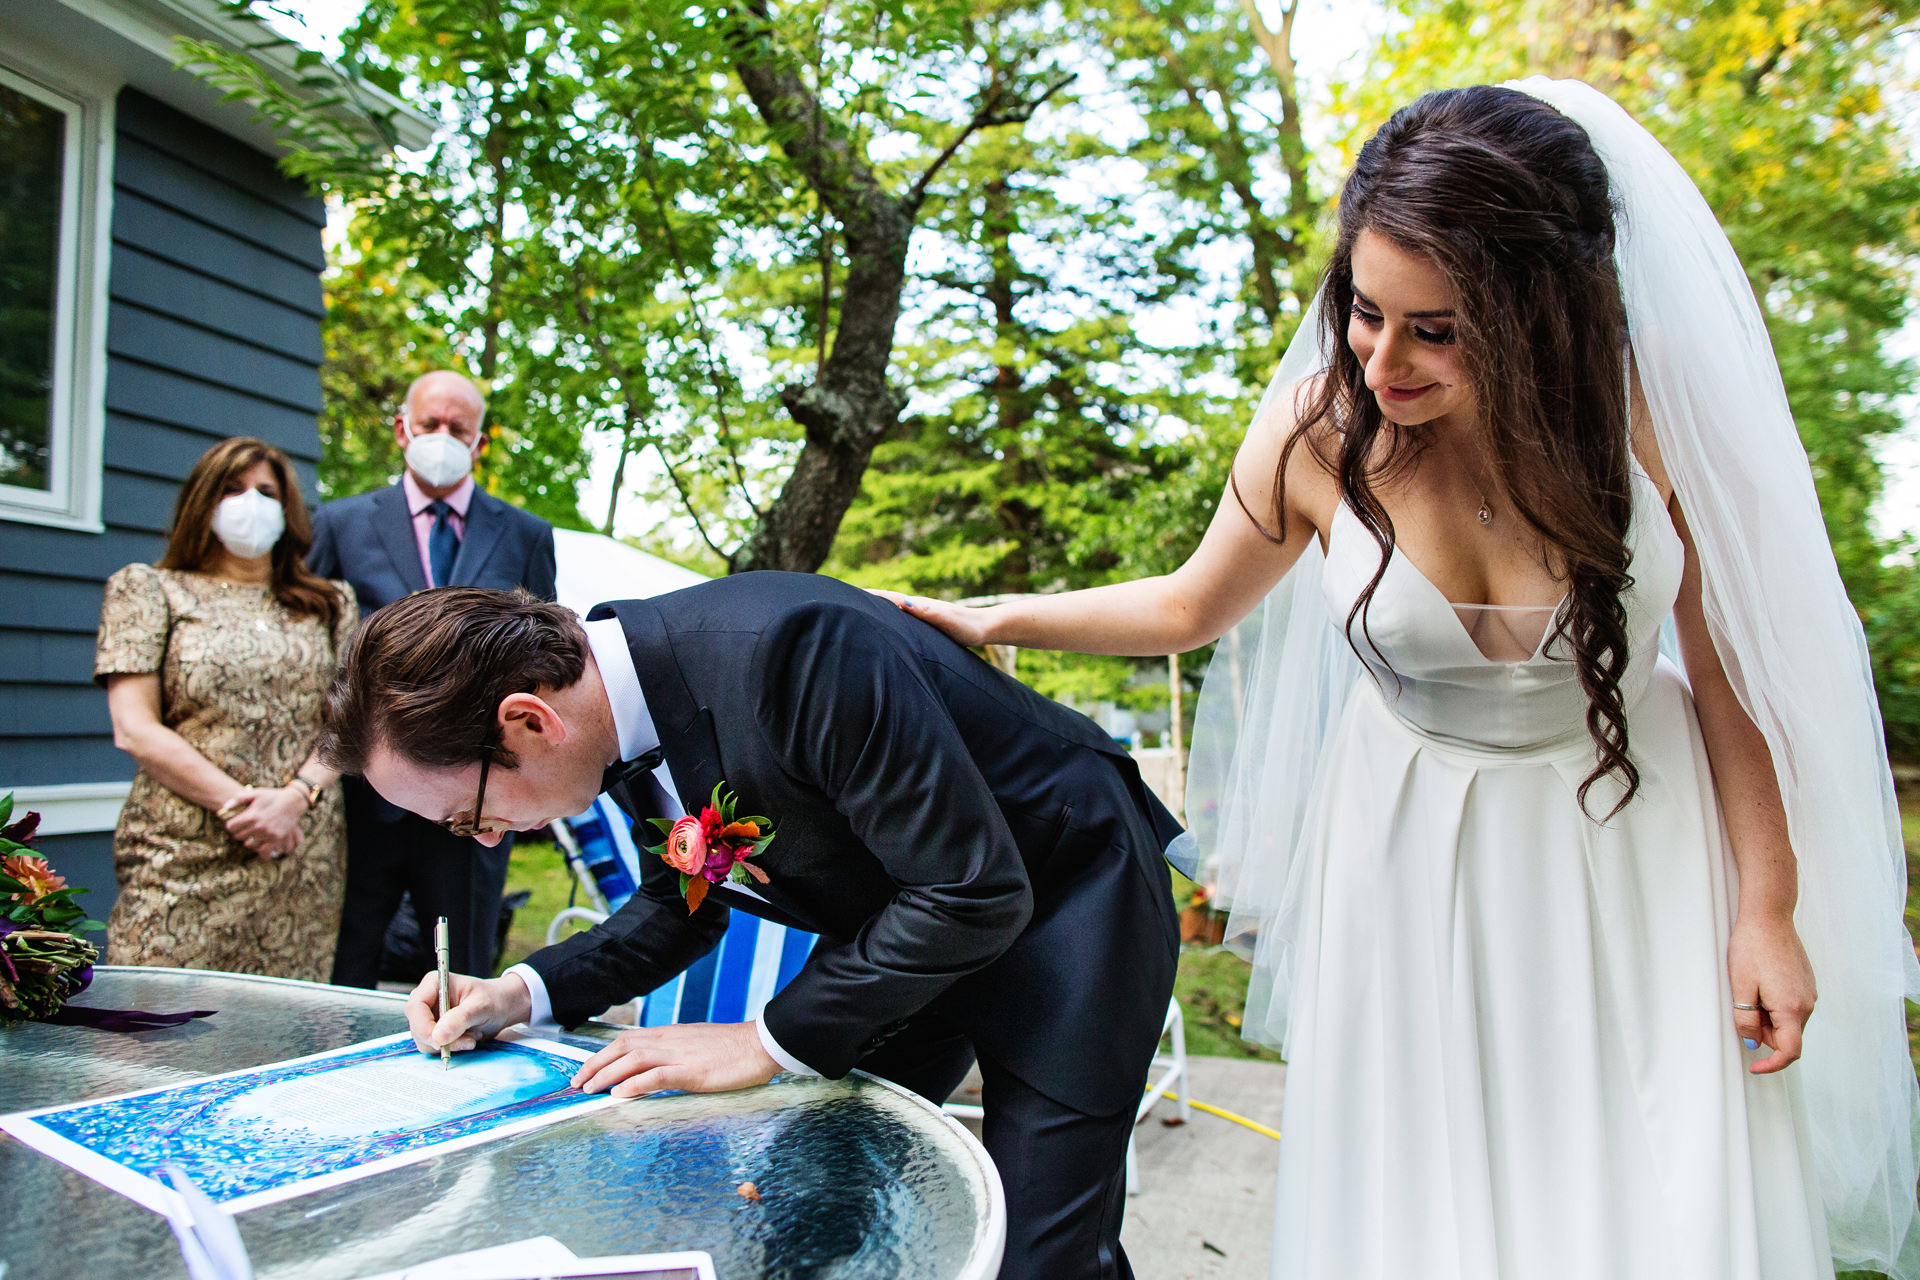 Montclair, New Jersey Backyard Wedding Photo | The groom signs their Ketubah